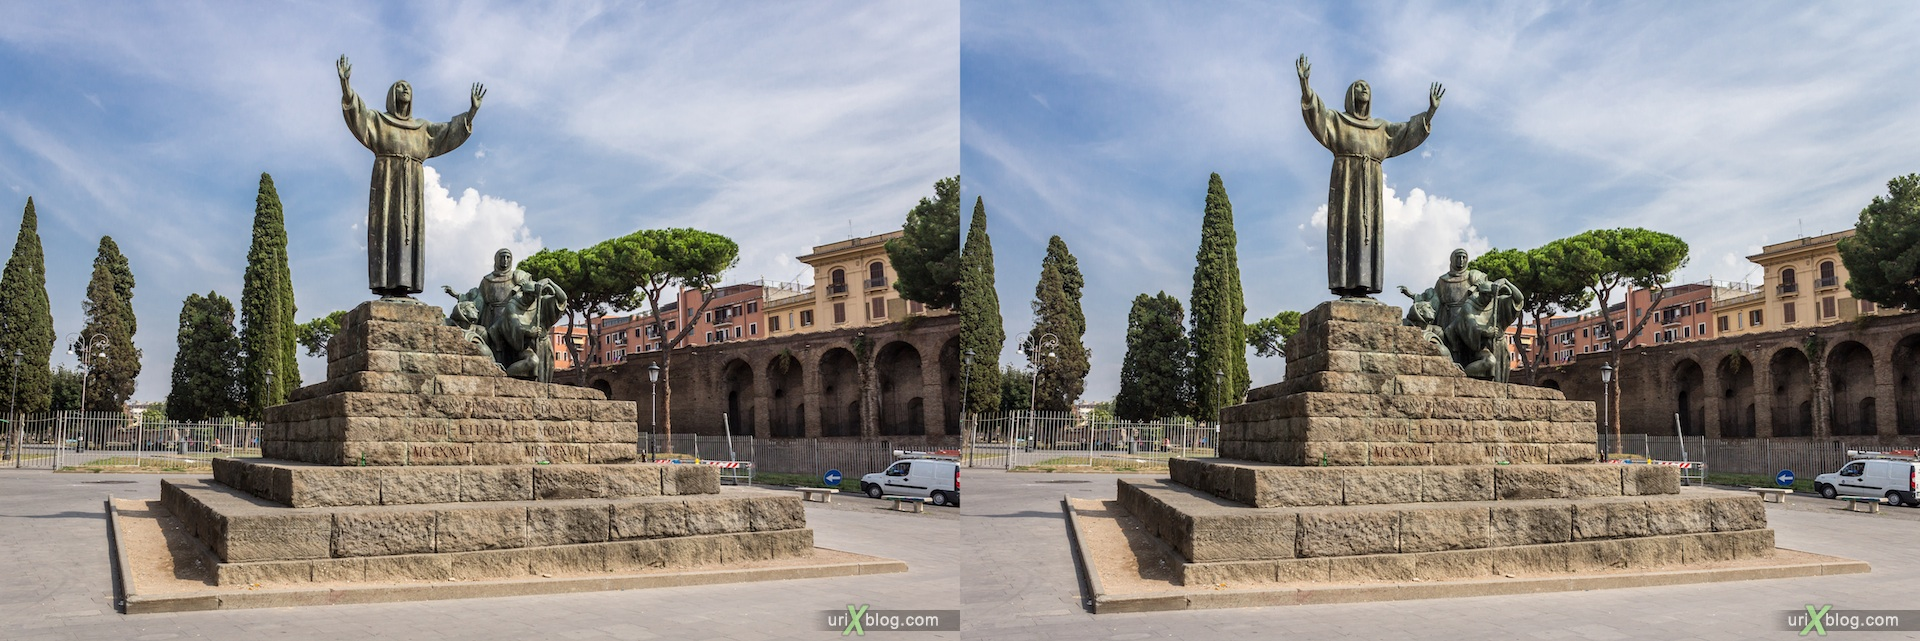 2012, Statue, Saint Francis monument, Piazzale Appio square, 3D, stereo pair, cross-eyed, crossview, cross view stereo pair